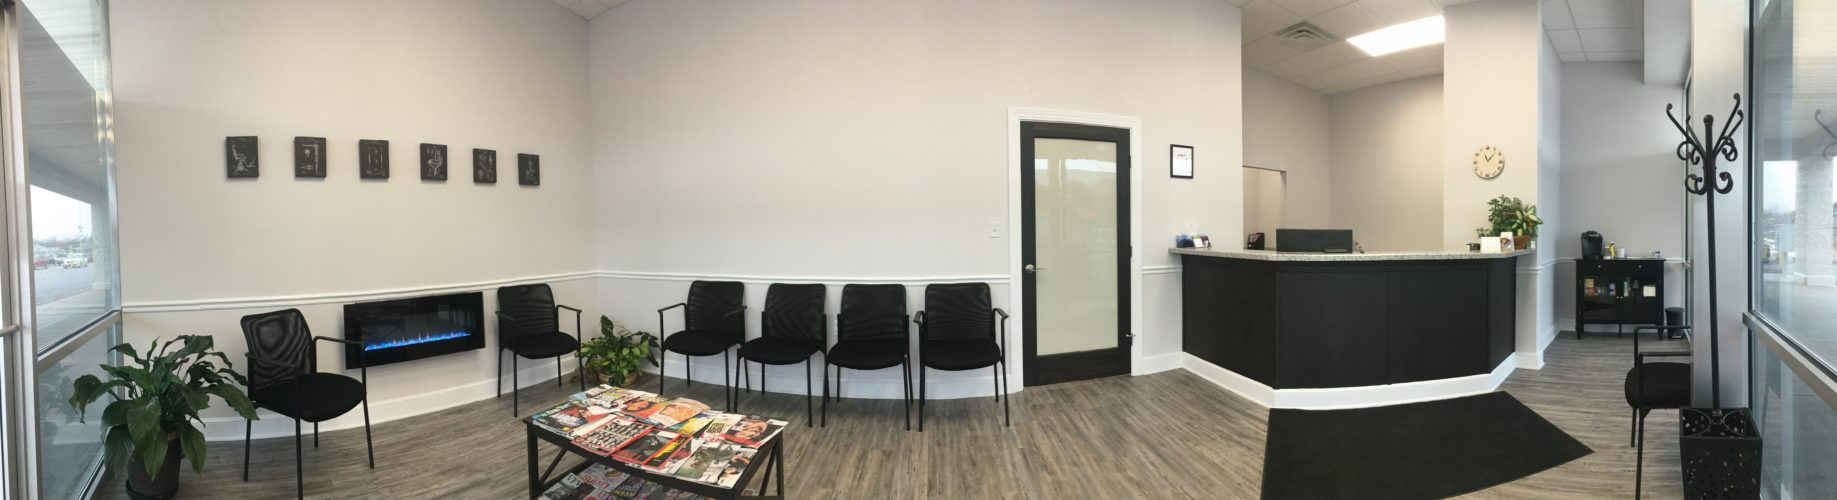 East Town Dental's waiting room